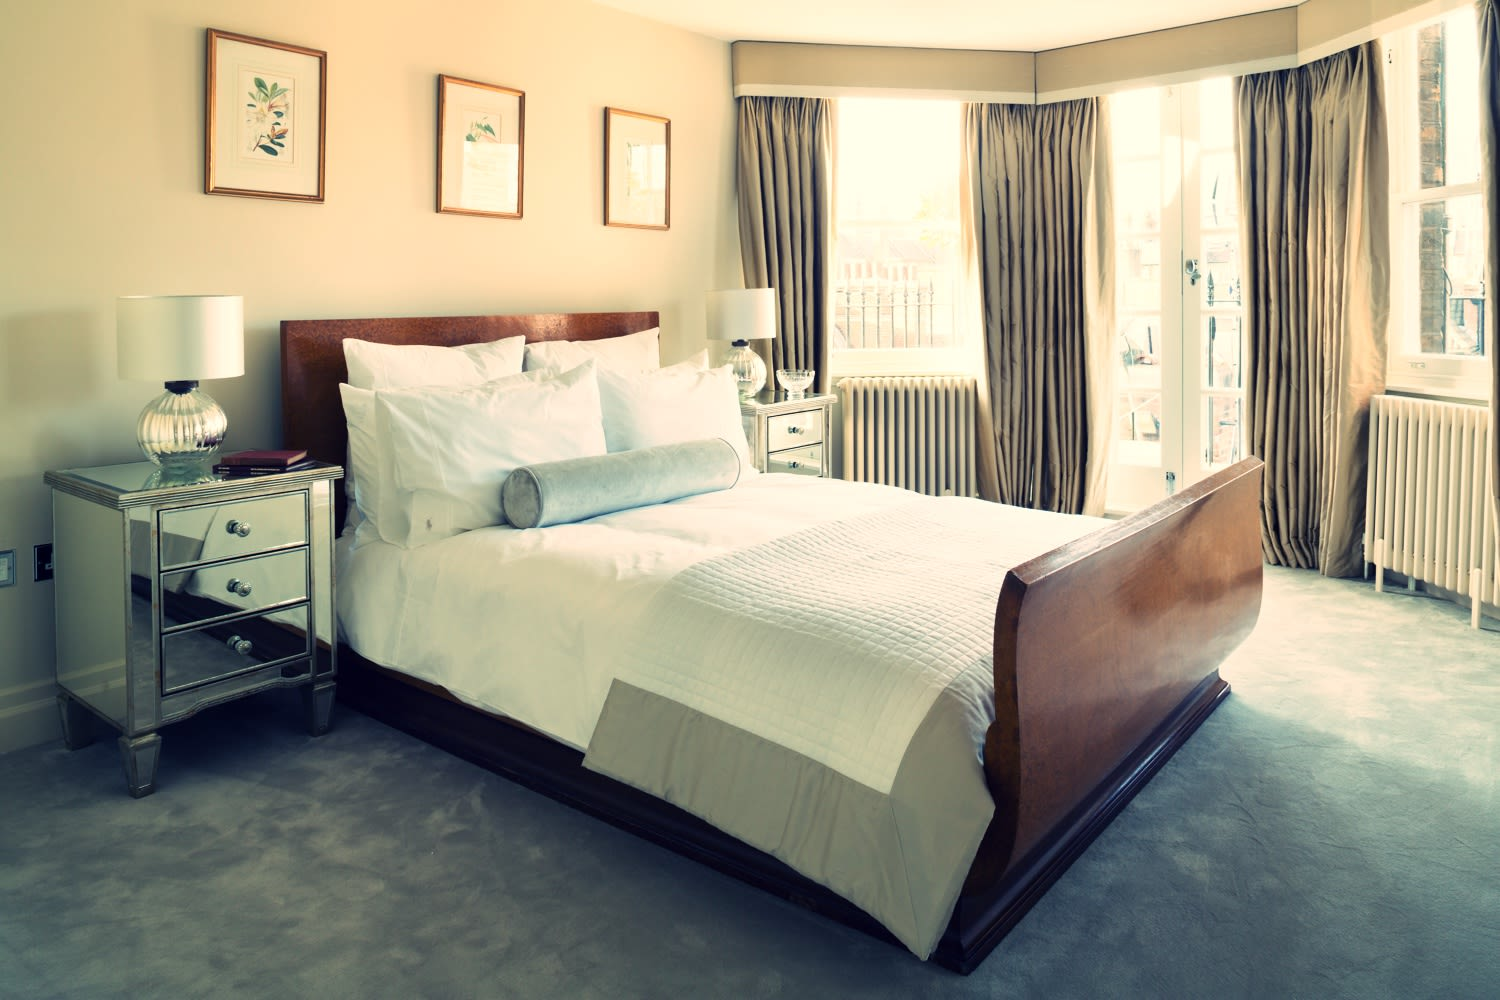 About us - Curtains, Blinds, Headboards, Pelmets, Upholstery in Battersea-1